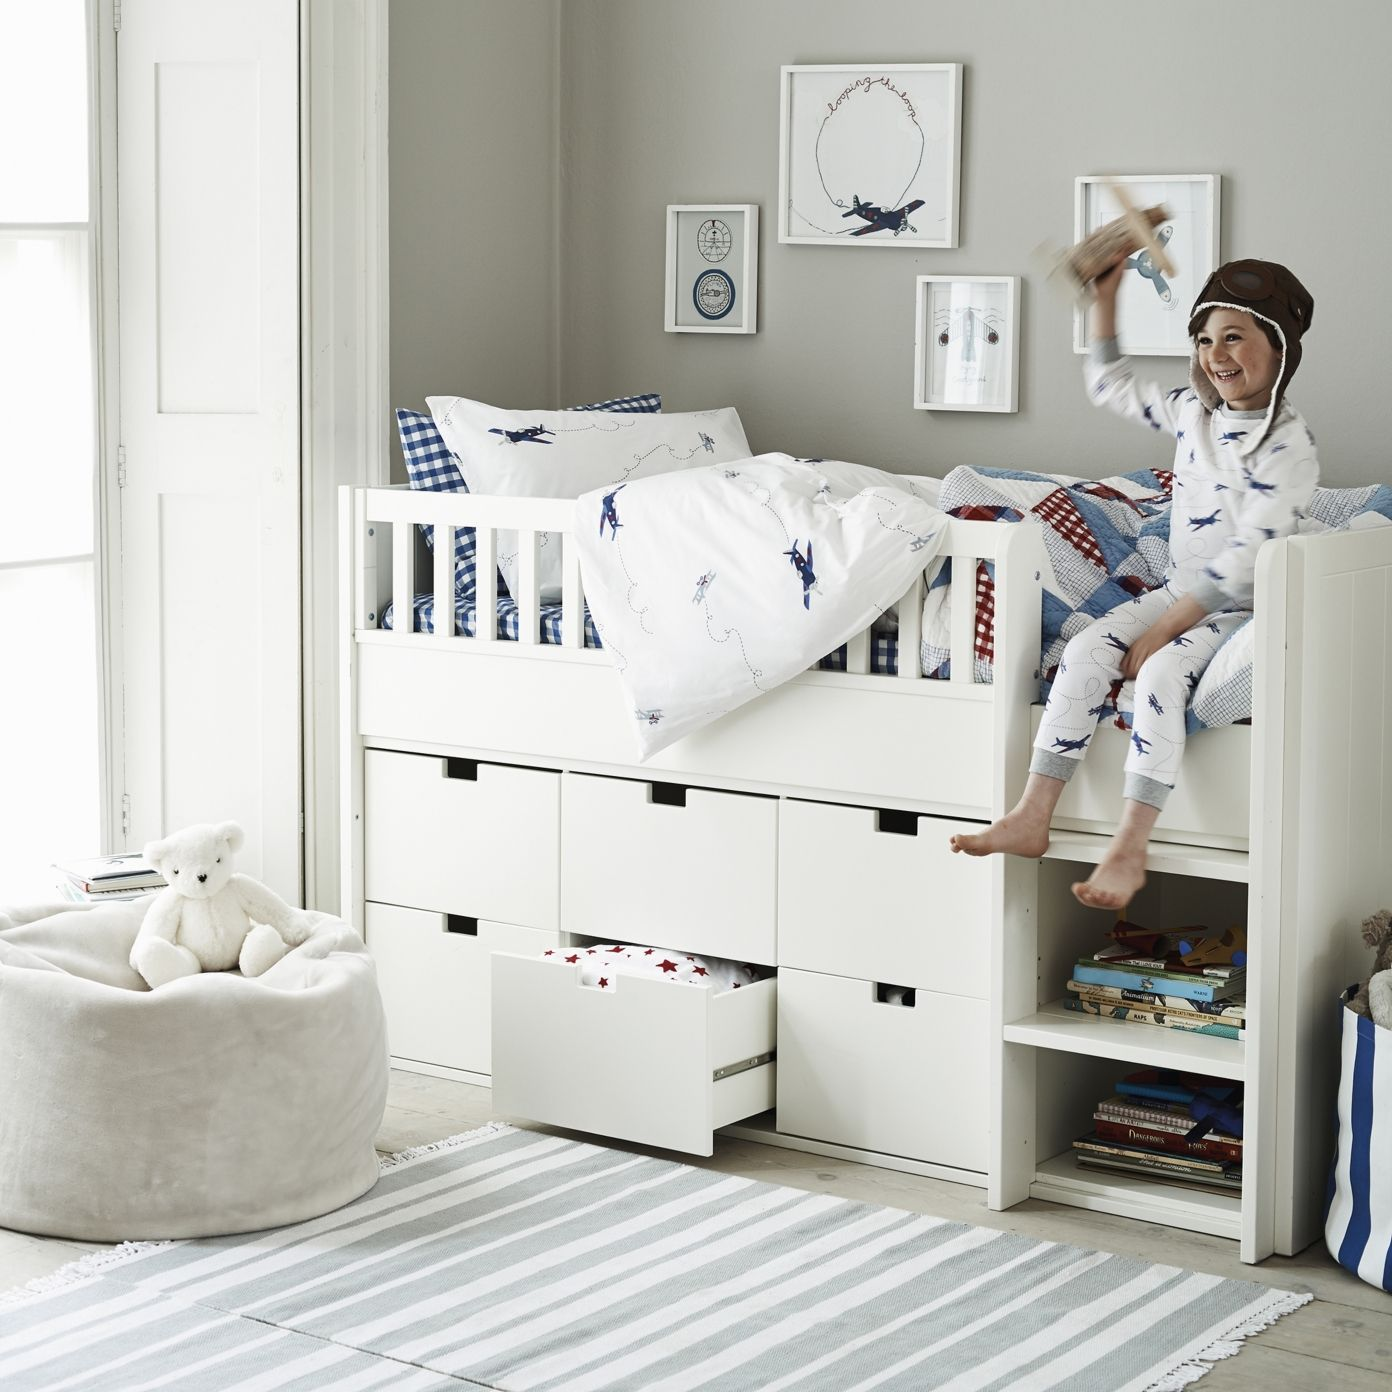 Classic Mid Sleeper Bed - Beds - The White Company